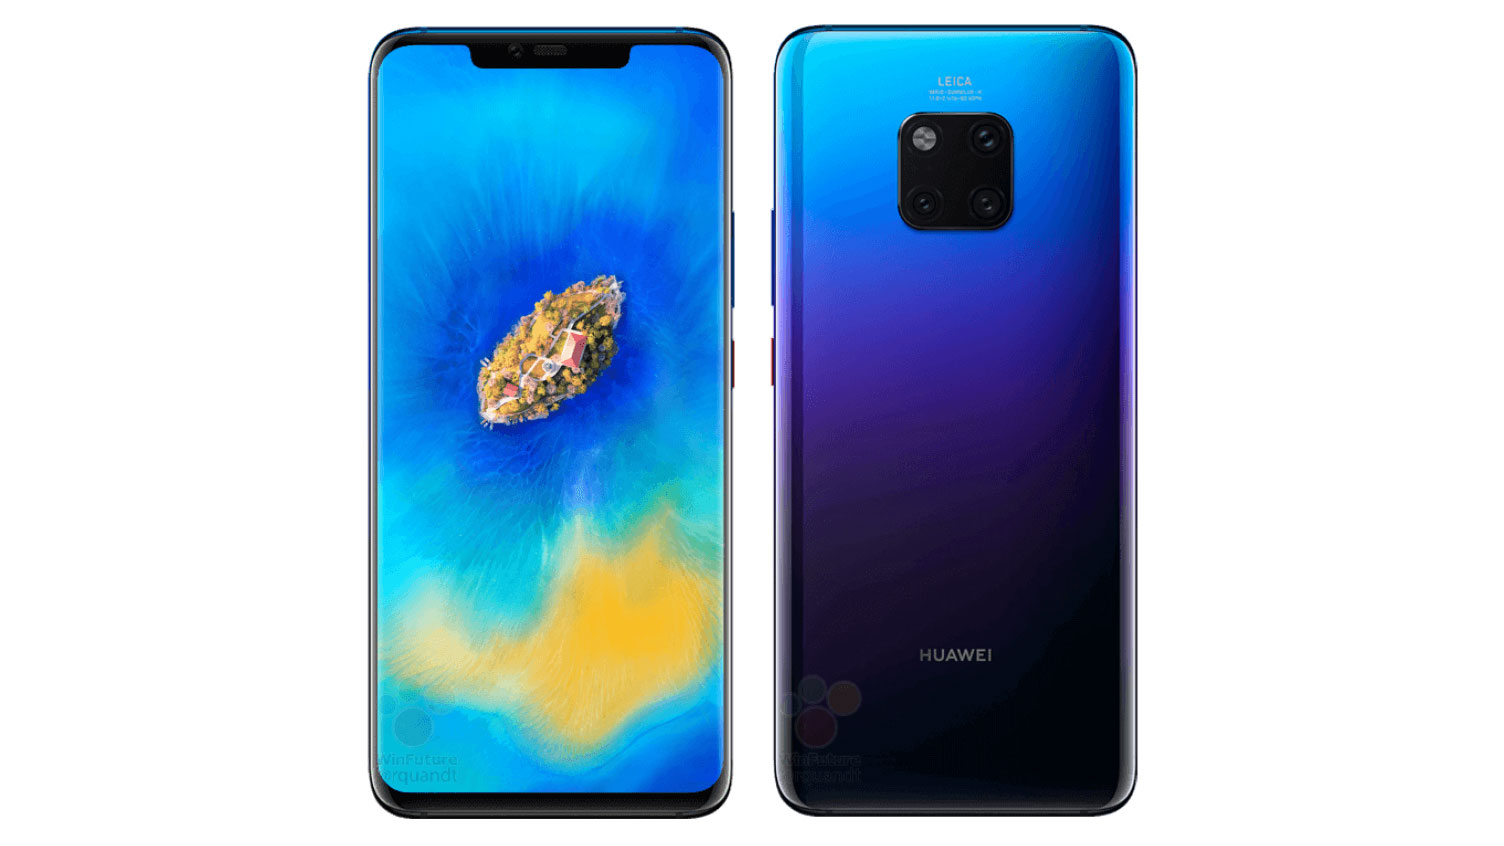 September 2018 Mobiles365 Lcd Touchscreen Xiaomi Redmi Note 4 Putih Other Than That Some Official Marketing Pictures Have Been Picked Up By Winfuture And Show Three Color Options With Black Blue Finishes Showing